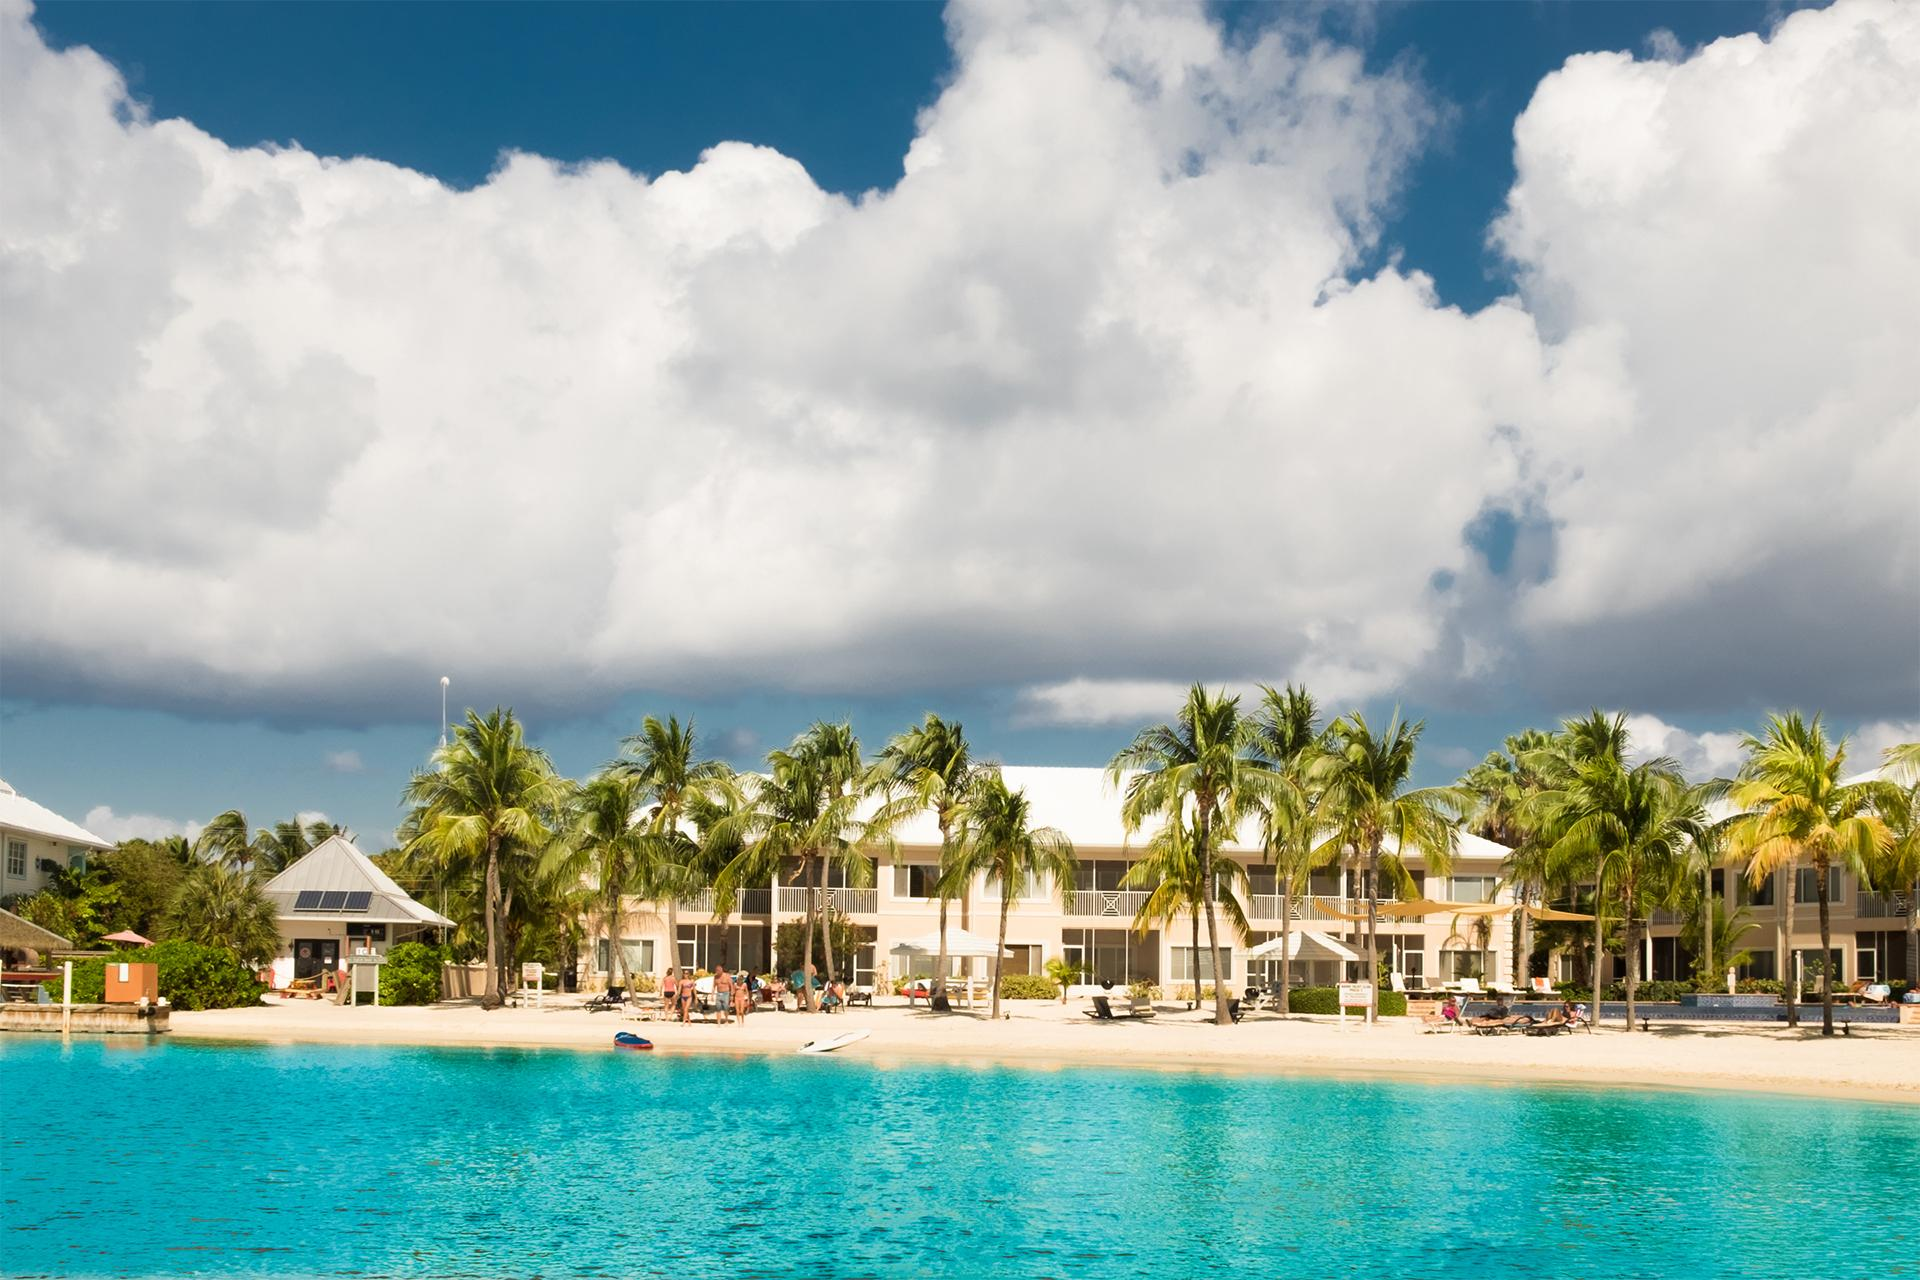 Ocean view resort with Cayman Islands vacation package